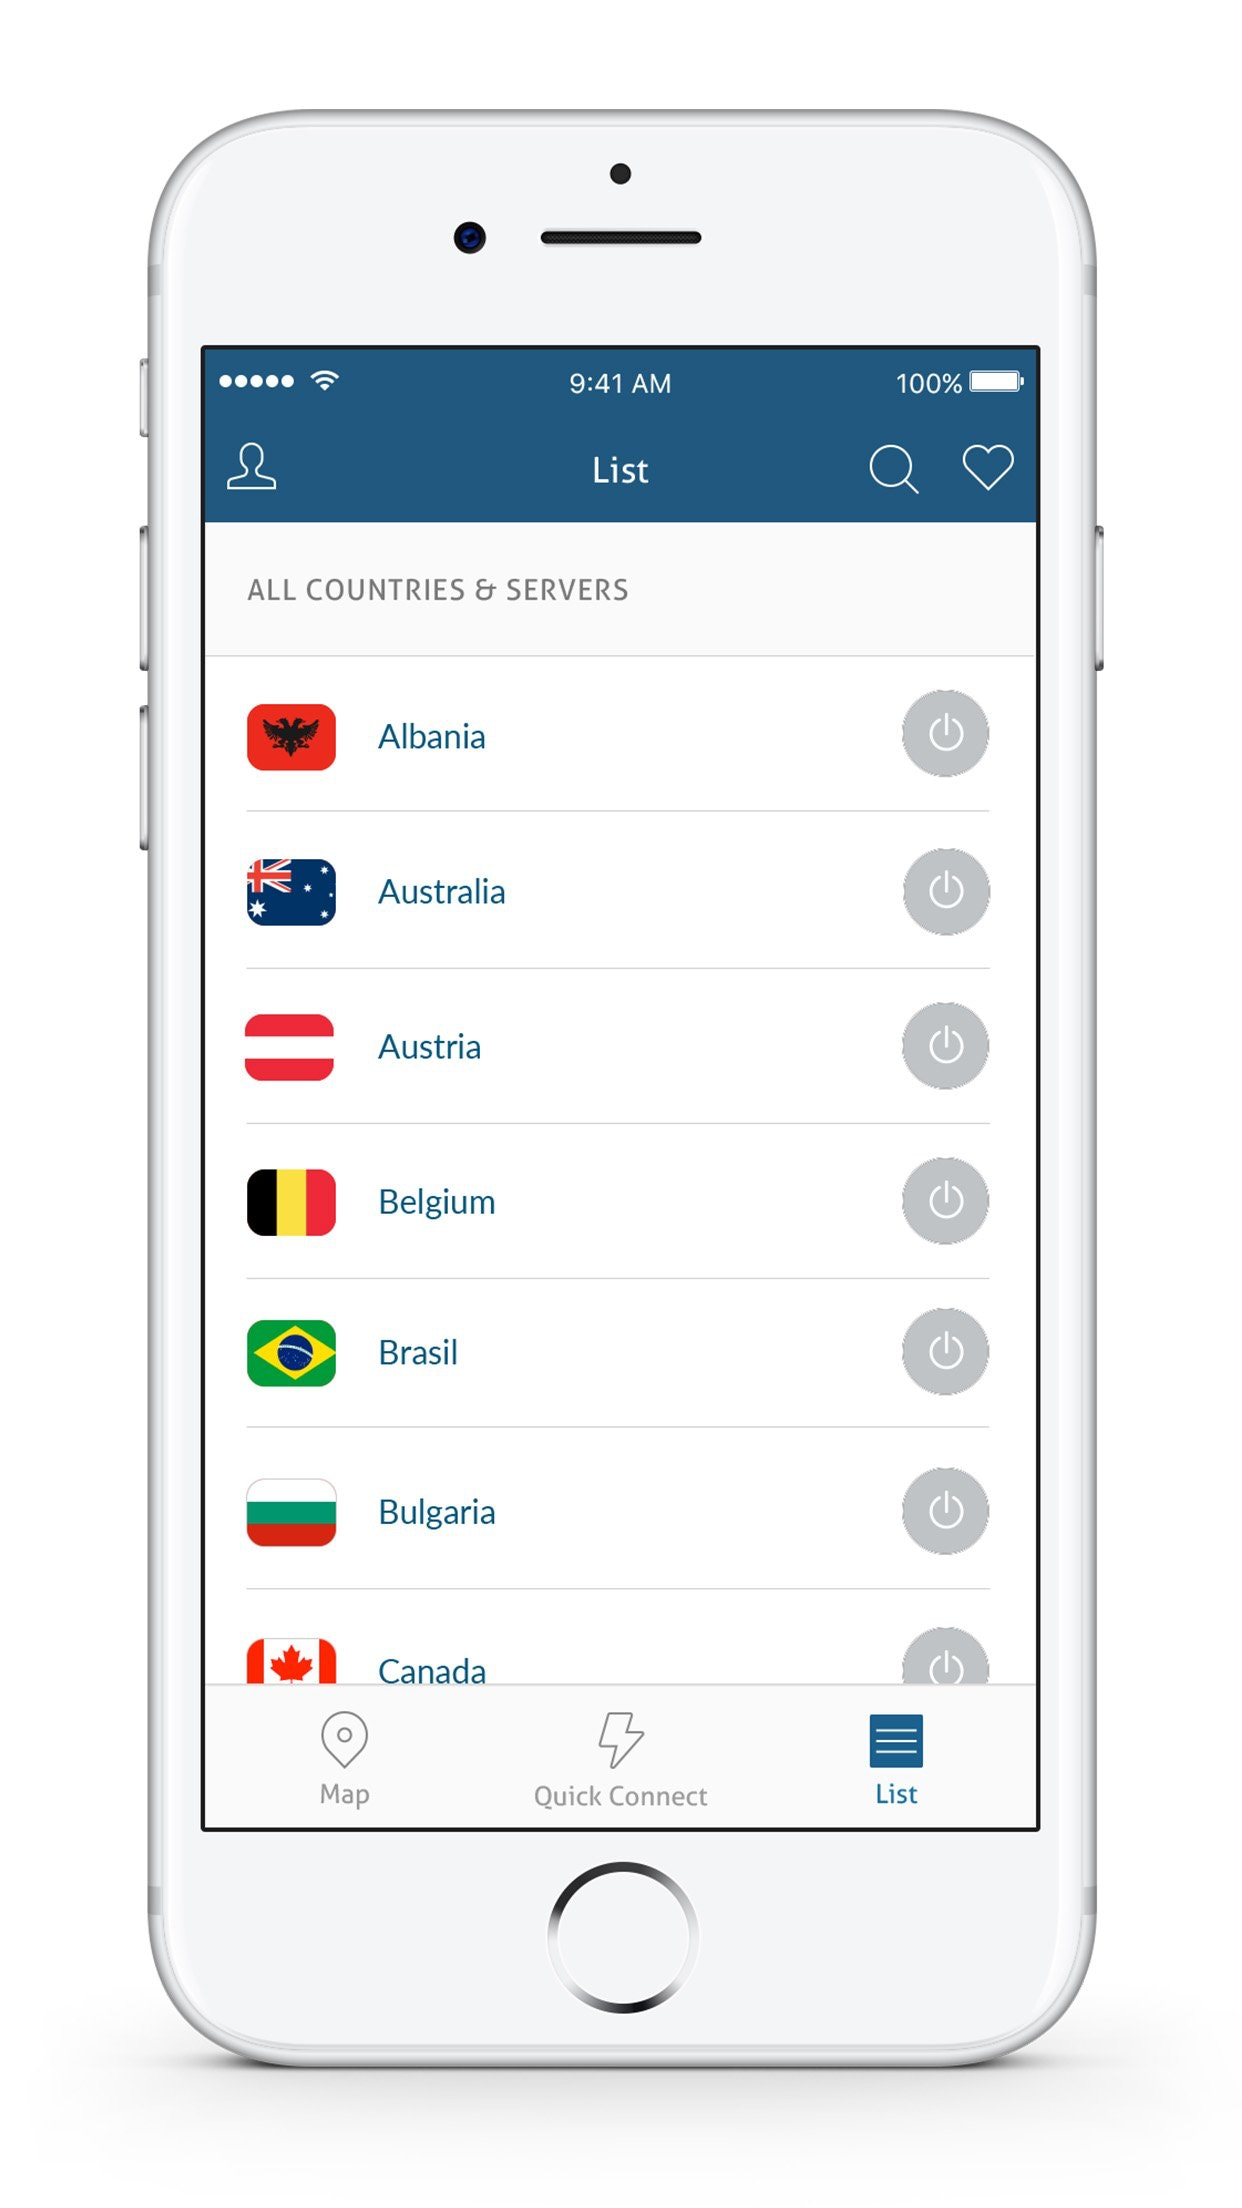 Mobile countries and servers list